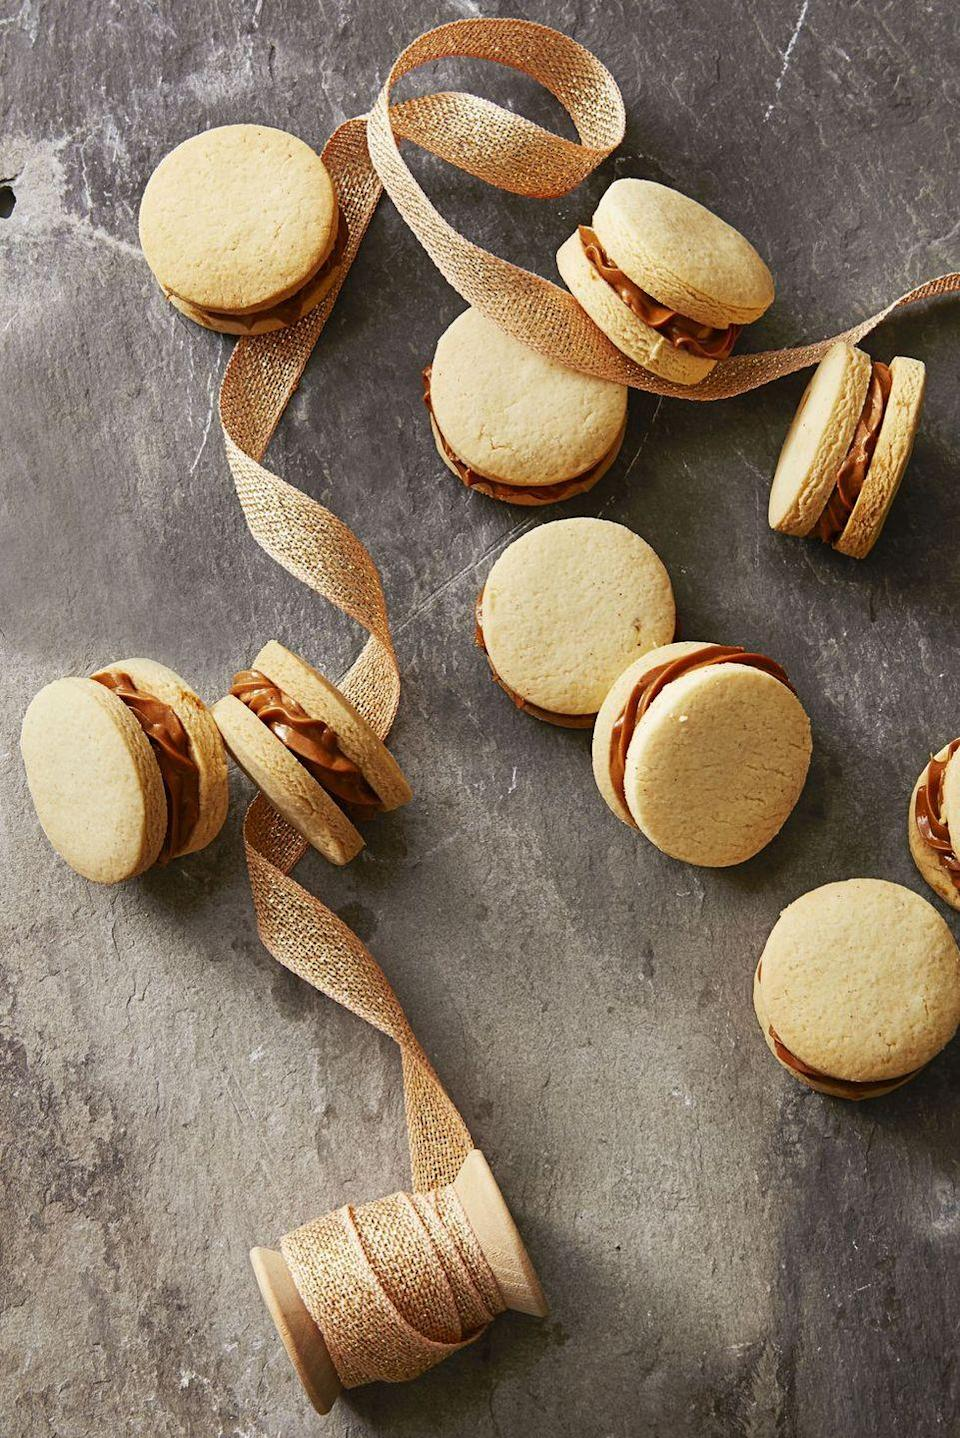 """<p>Because spring still deserves some decadence, make these coin-sized cookie sandwiches using store-bought, or homemade, caramel sauce.</p><p><em><a href=""""https://www.goodhousekeeping.com/food-recipes/dessert/a35757/dulce-de-leche-sandwiches/"""" rel=""""nofollow noopener"""" target=""""_blank"""" data-ylk=""""slk:Get the recipe for Dulce De Leche Sandwich Cookies »"""" class=""""link rapid-noclick-resp"""">Get the recipe for Dulce De Leche Sandwich Cookies »</a></em></p>"""